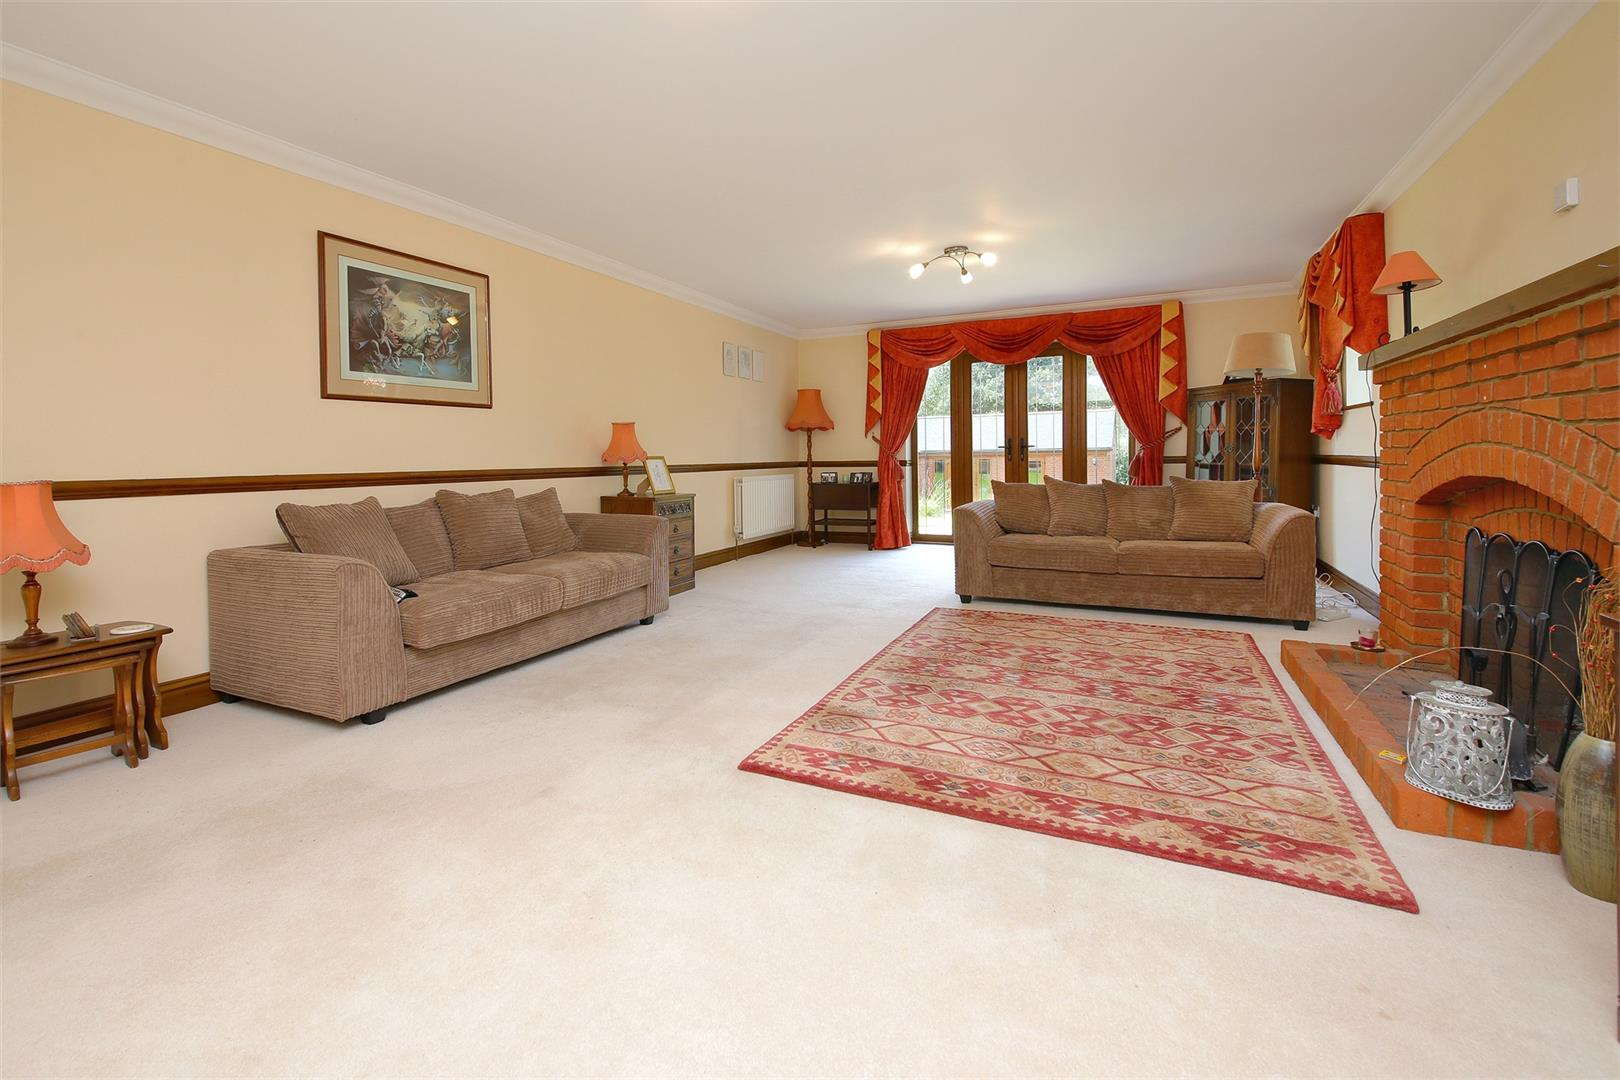 6 bed to rent in Elstree - (Property Image 1)